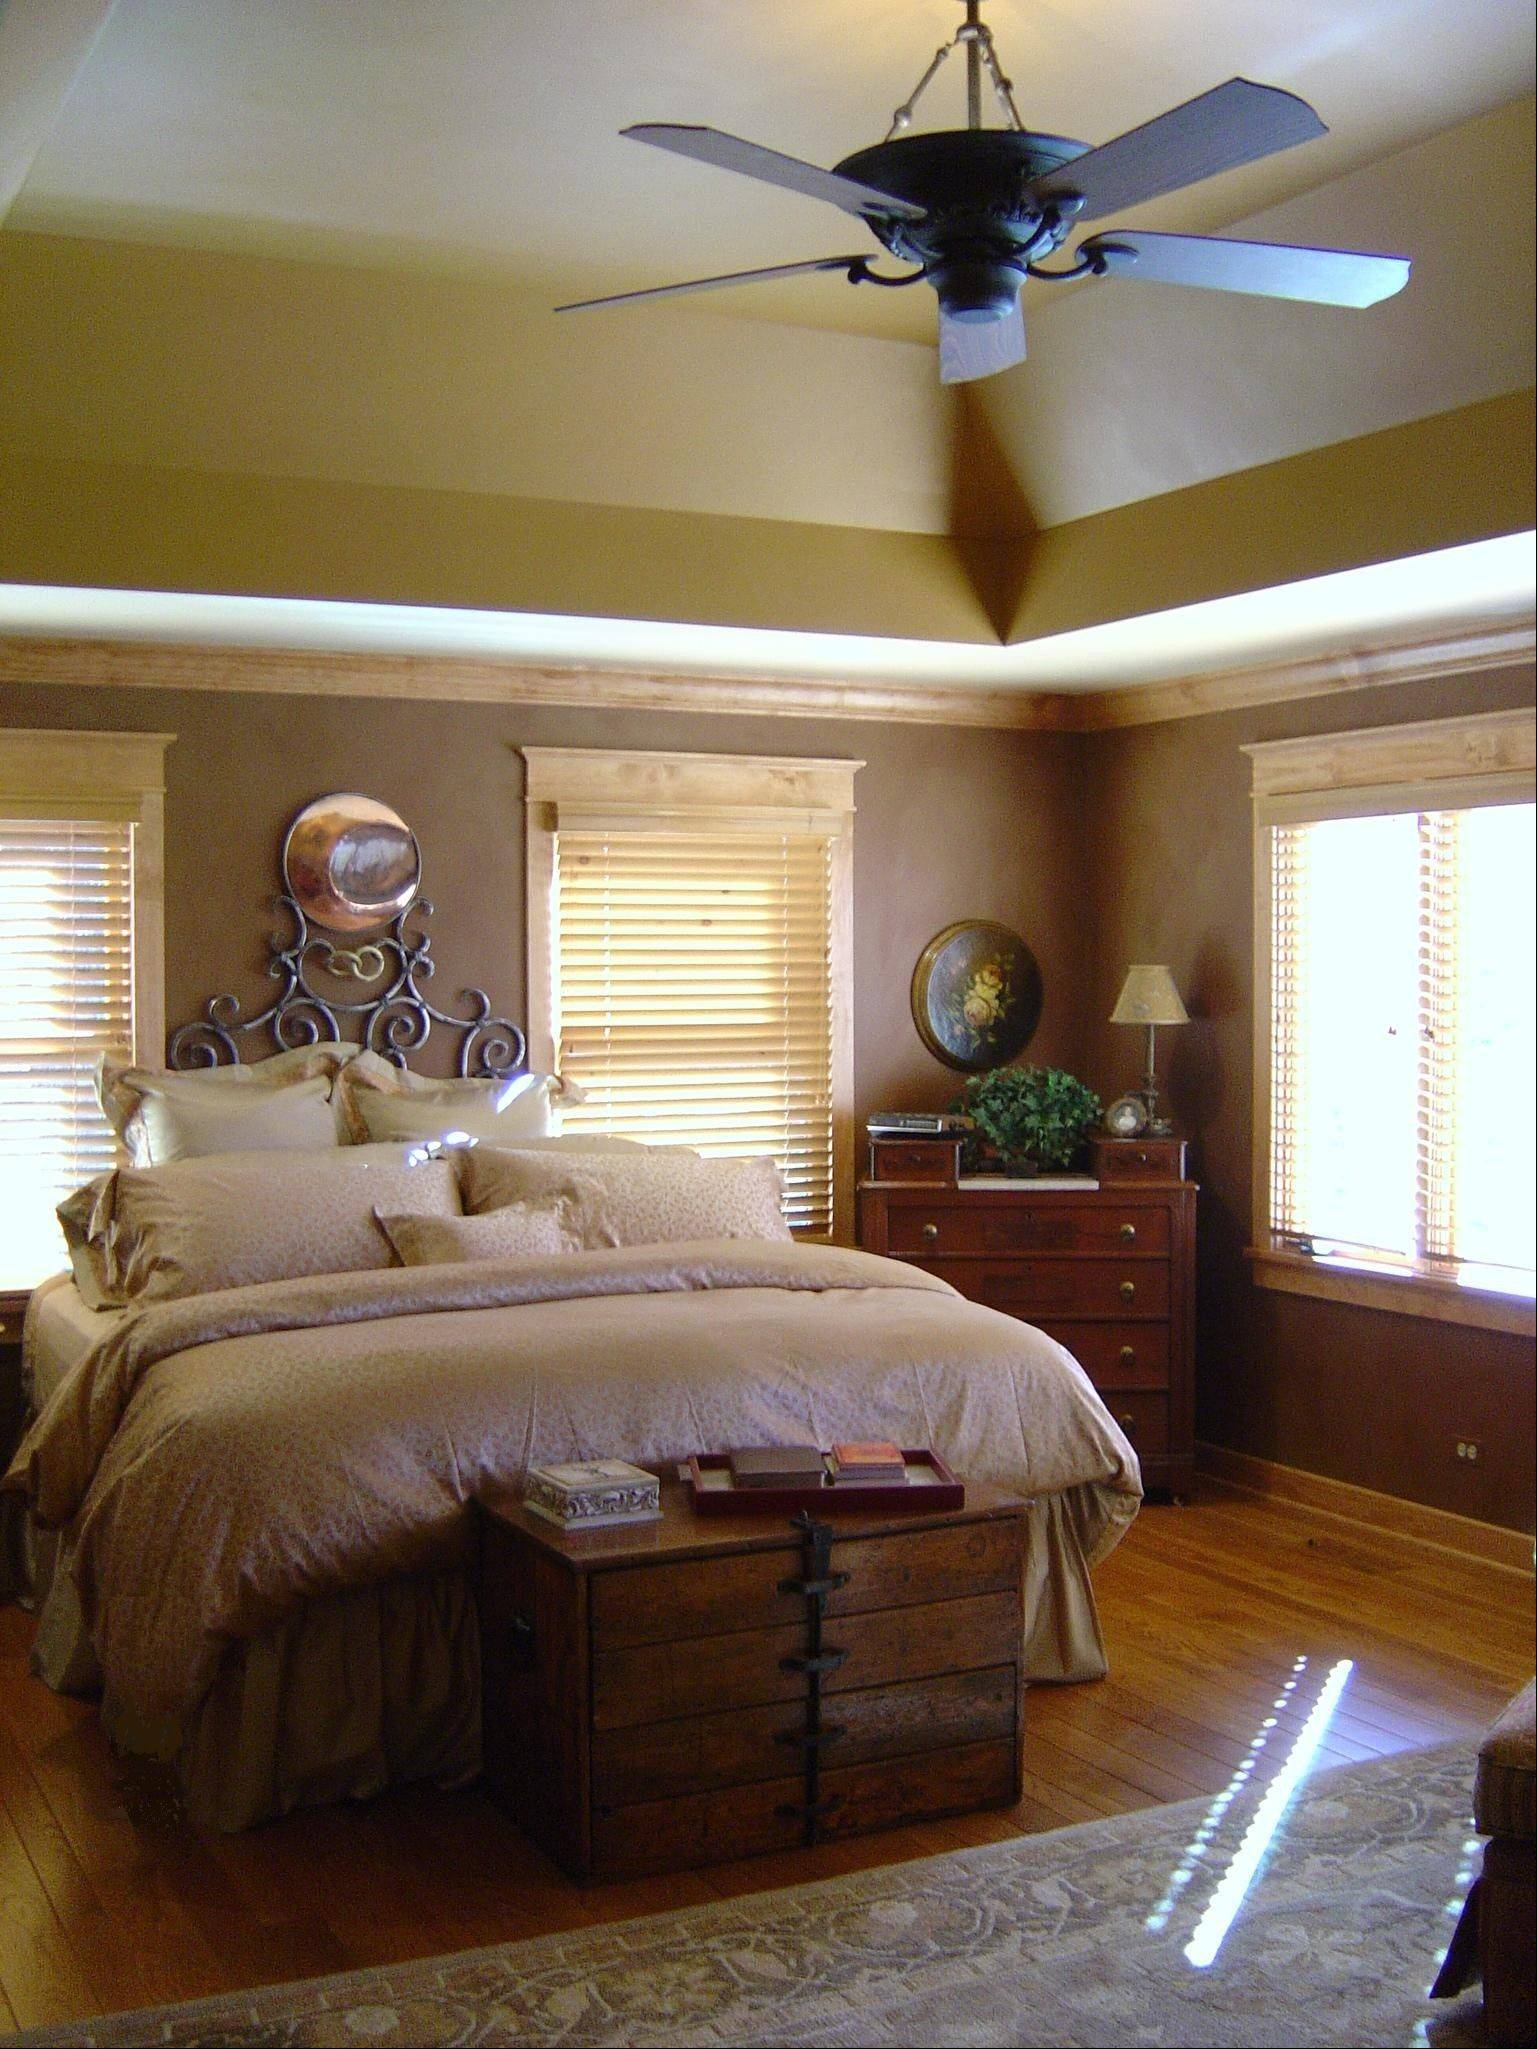 The master bedroom project is the work of McDowell Inc. in St. Charles.